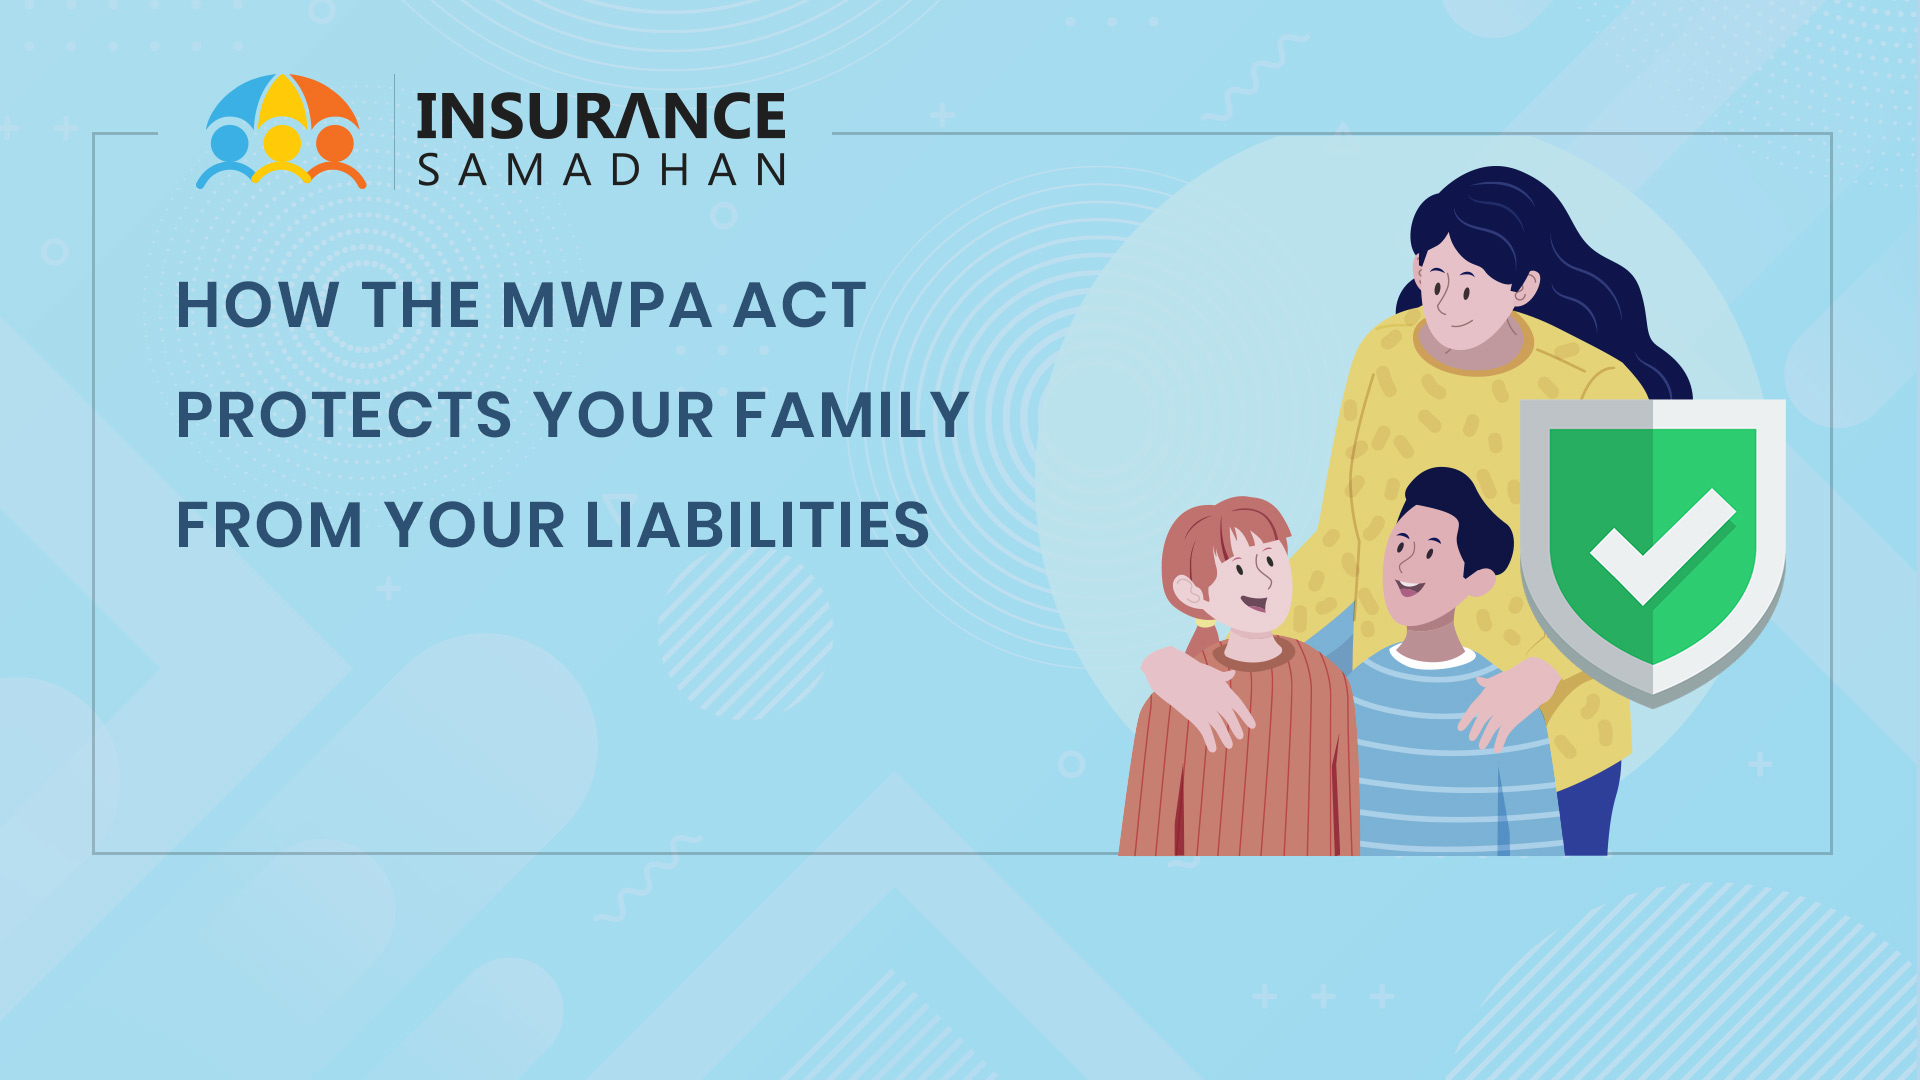 How the MWPA Act Protects Your Family from Liabilities